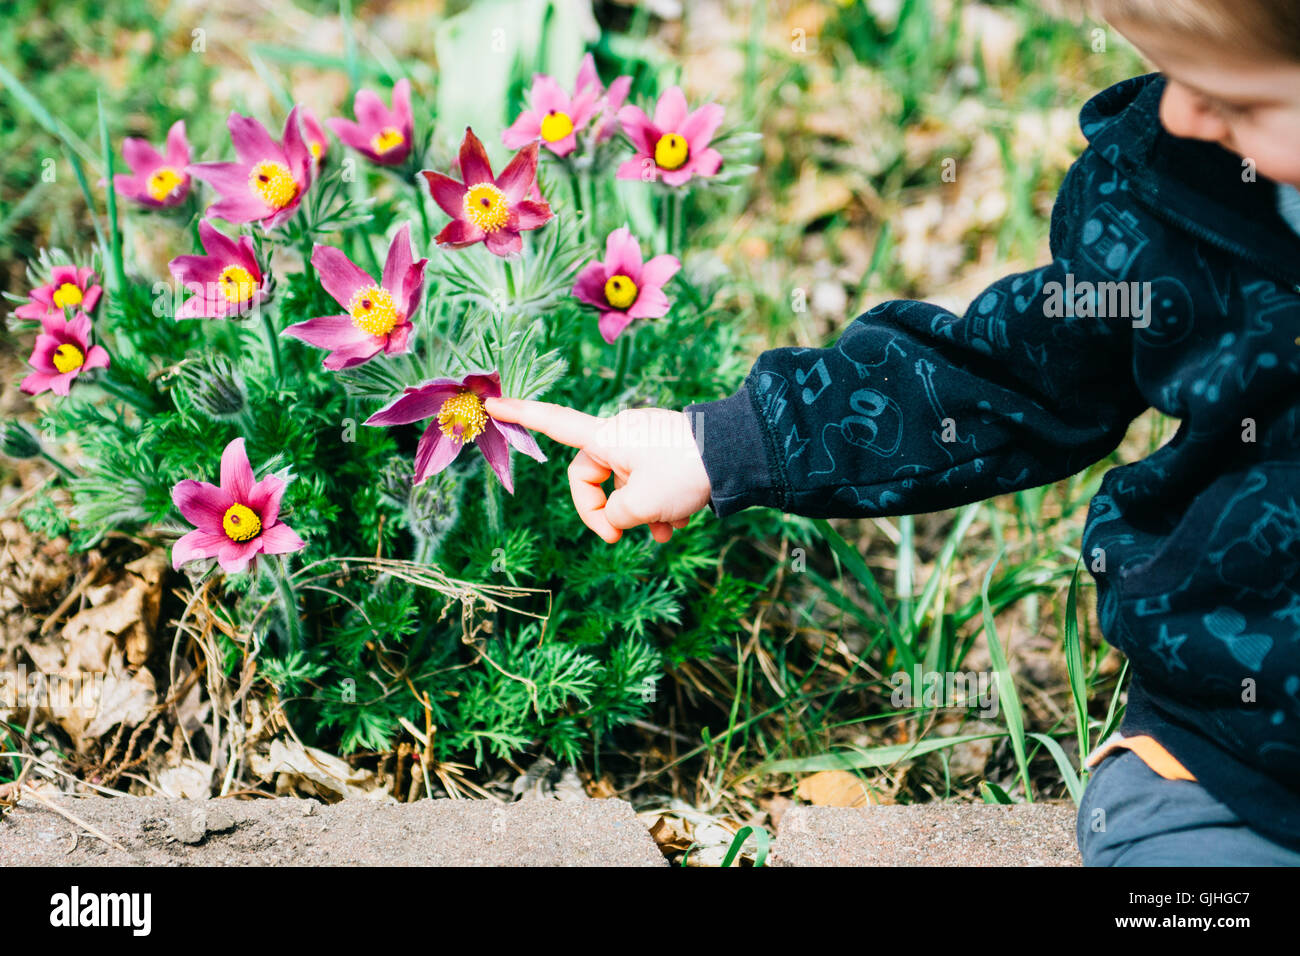 Boy pointing at flowers - Stock Image